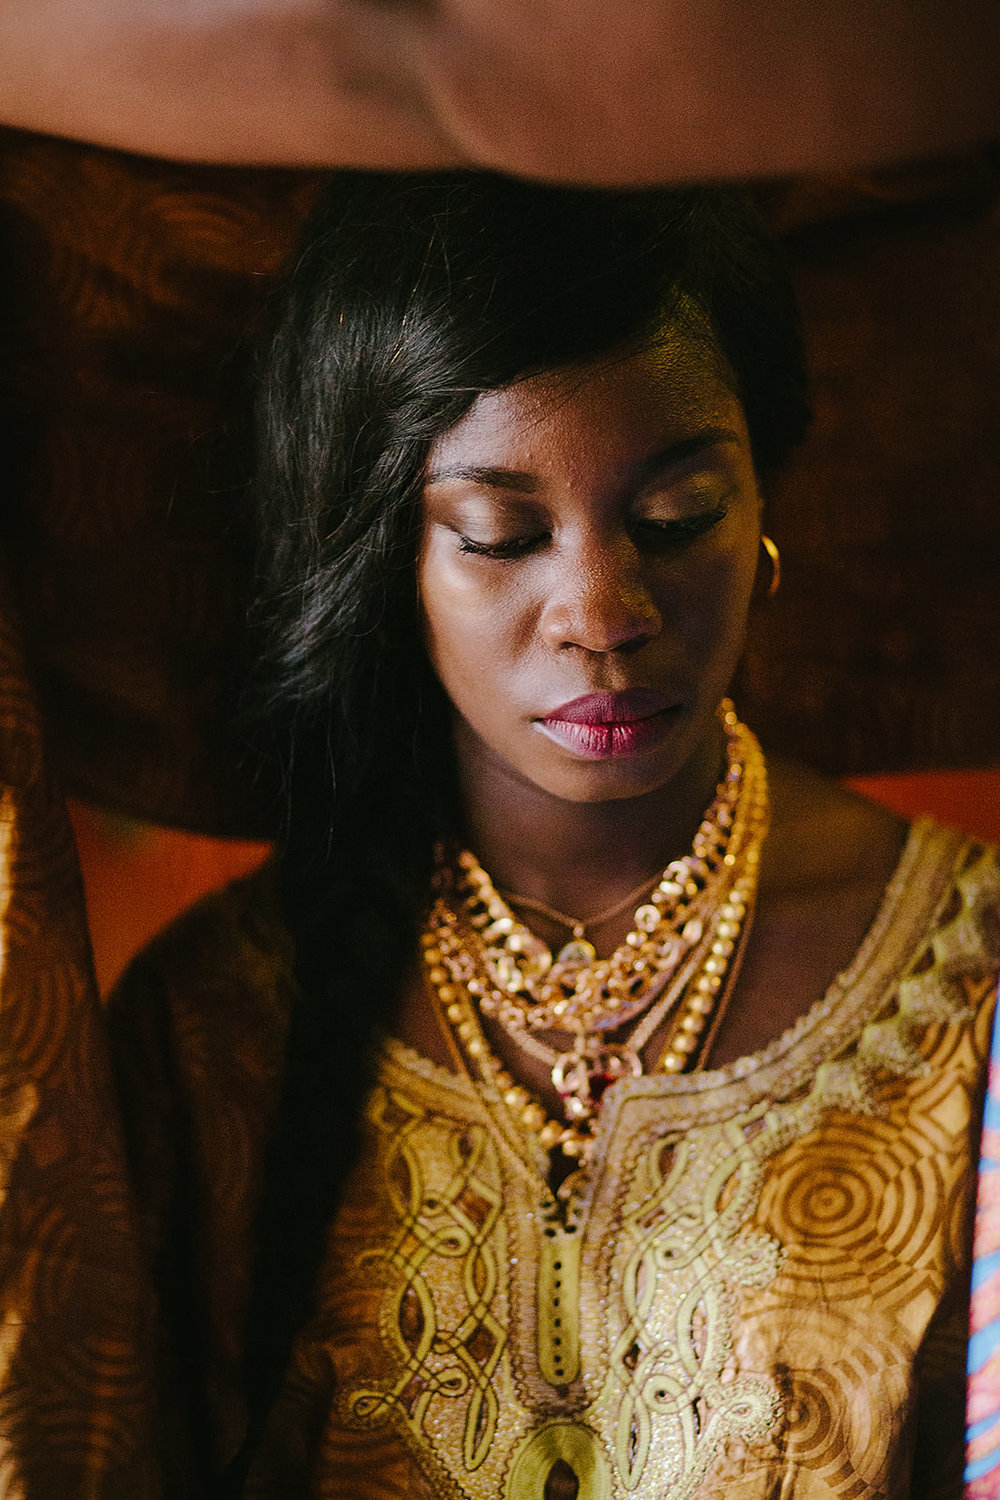 Portrait of a bride wearing golden traditional guinean wedding dress. By Oceânica Photography